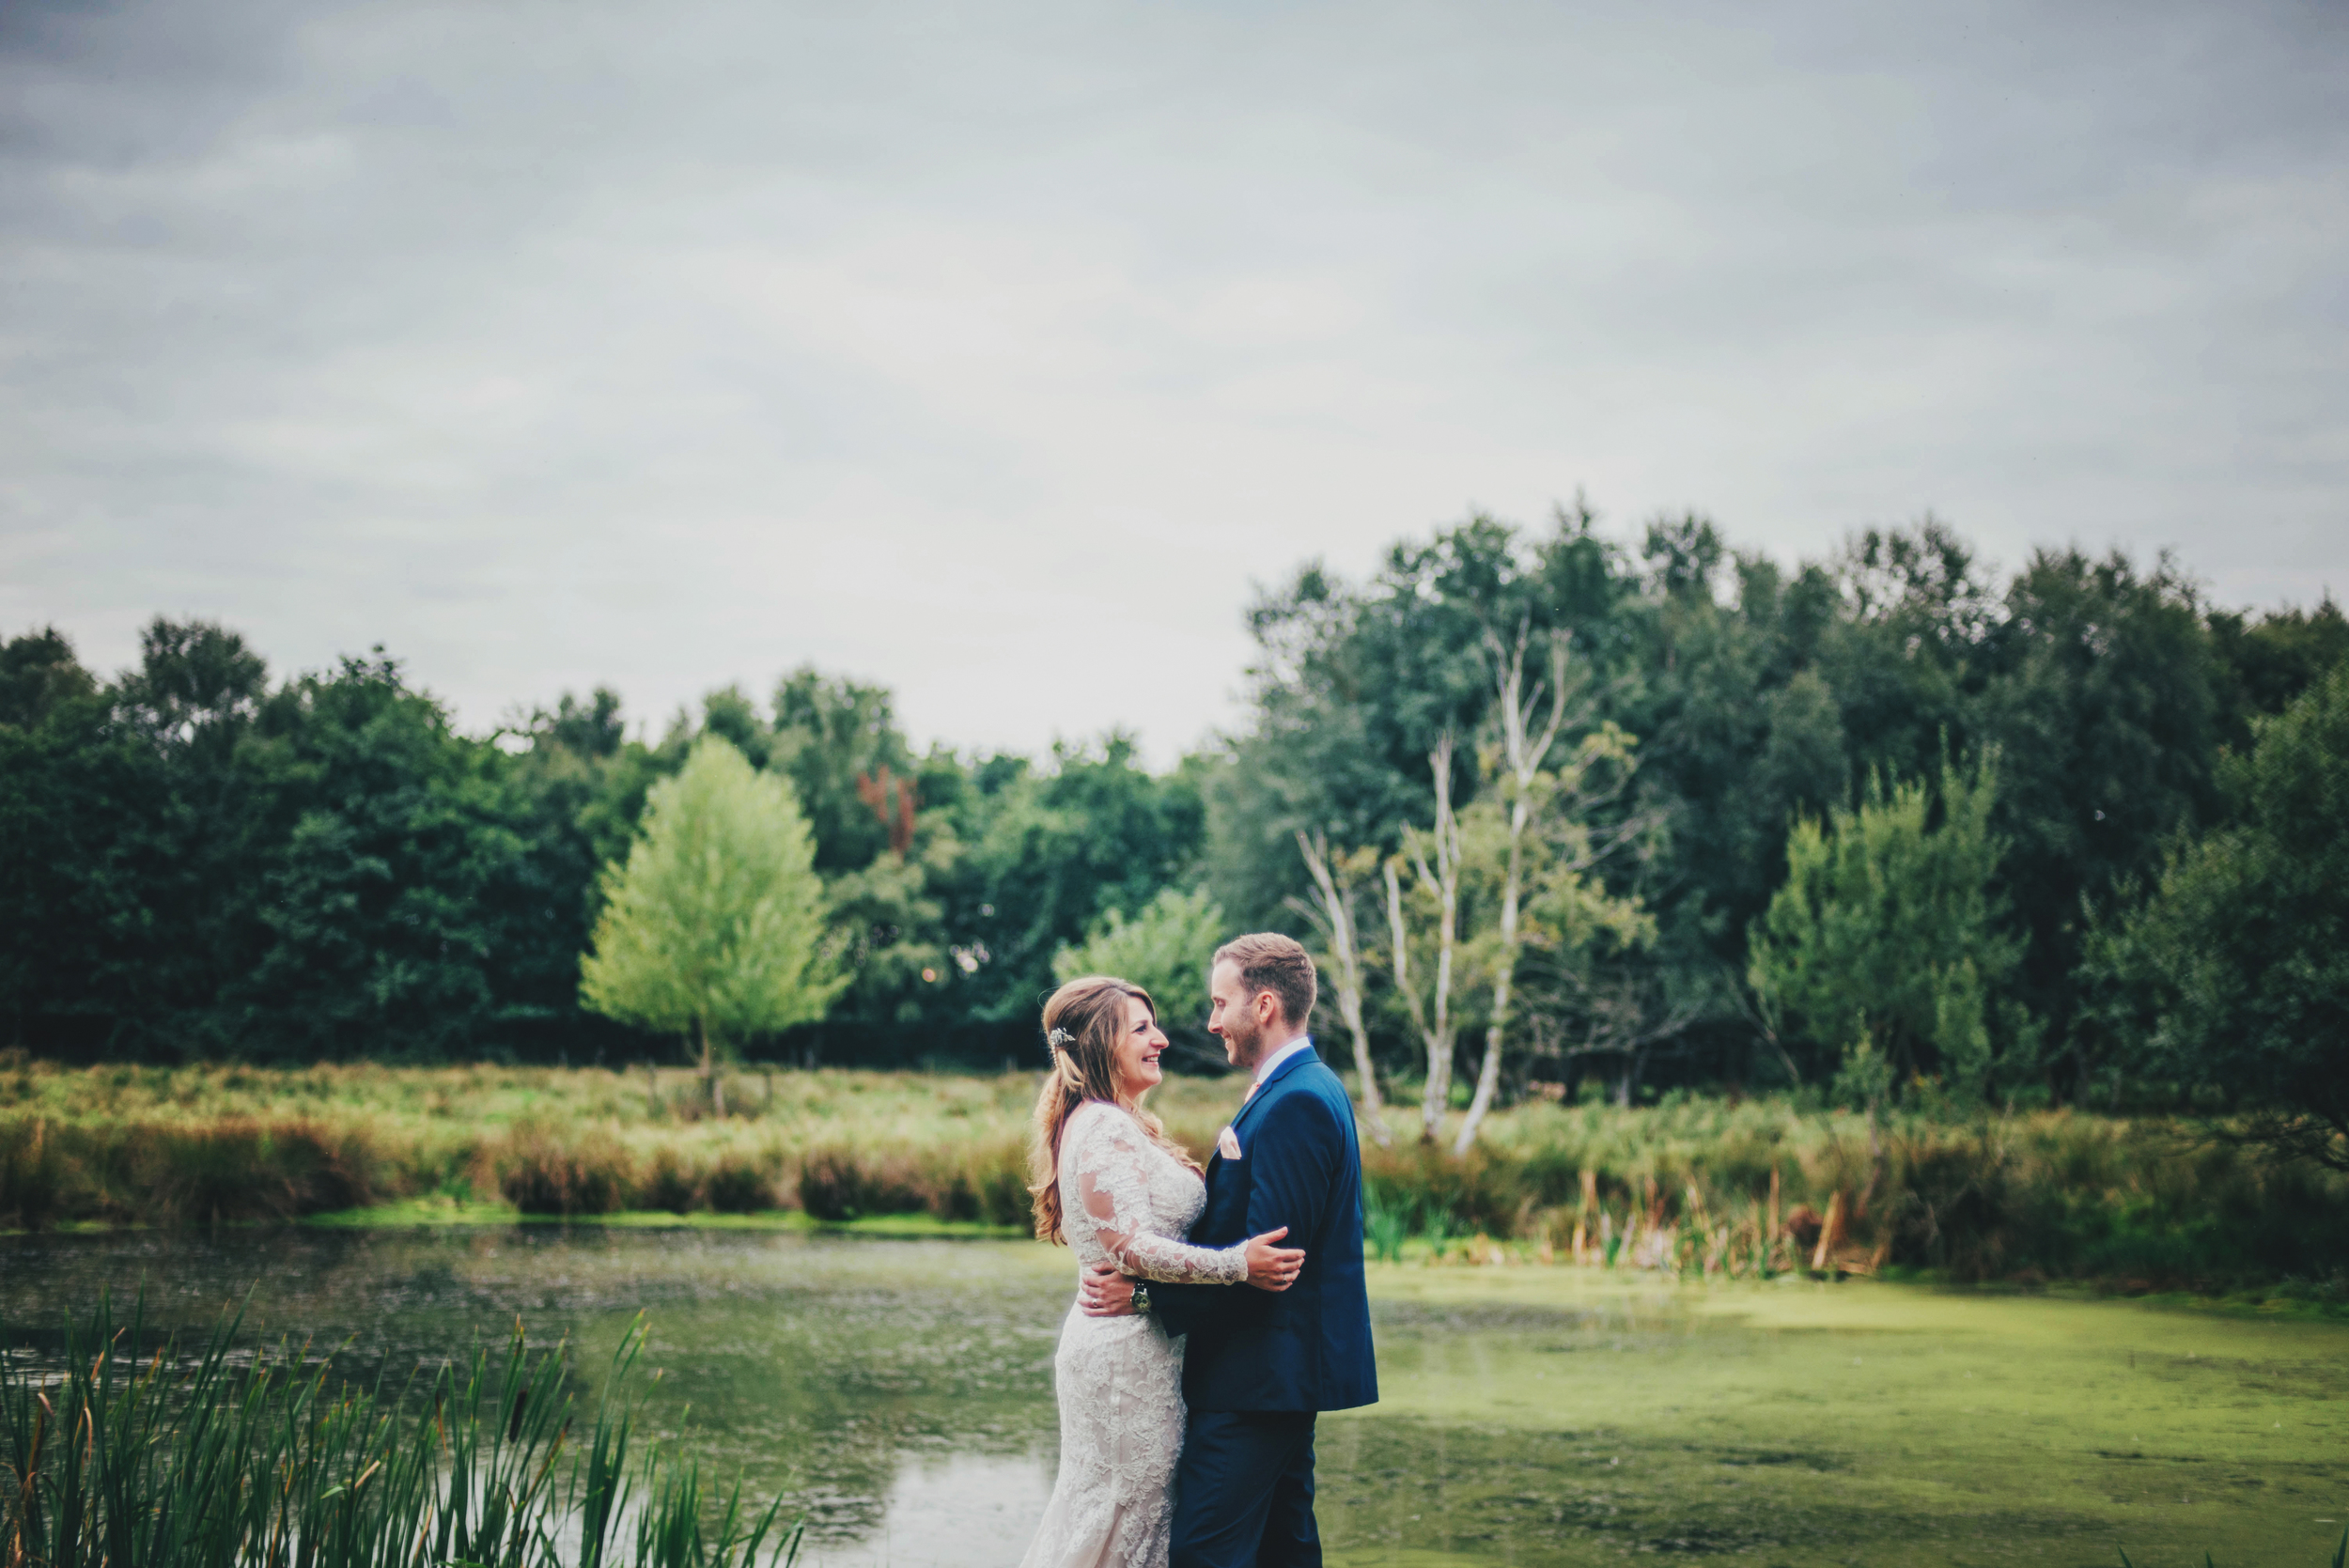 Bride Groom Lake Rustic Essex UK Documentary Wedding Photographer